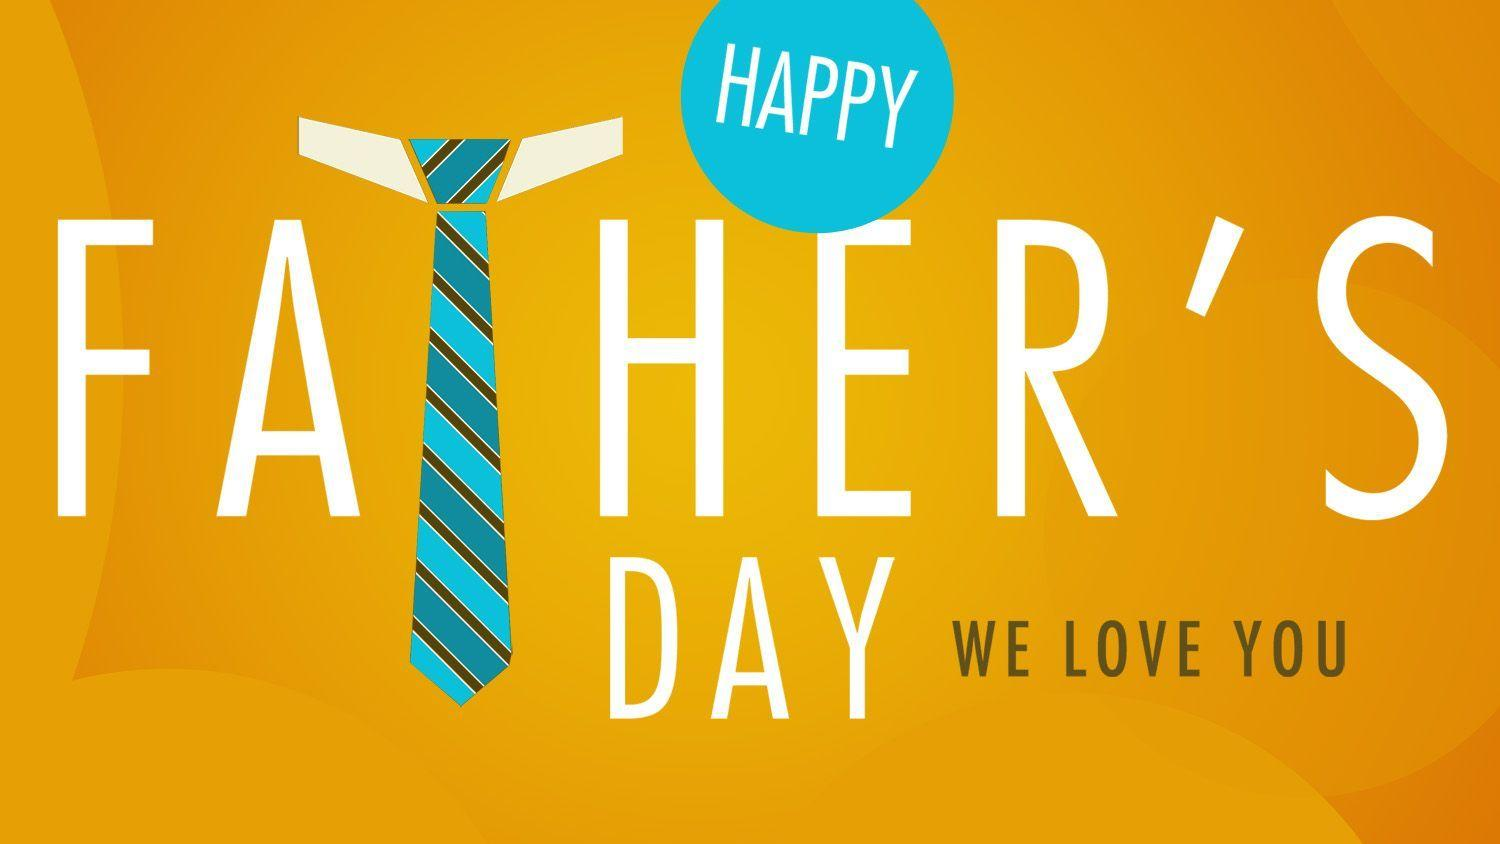 Fathers Day Wallpapers Wallpaper Cave